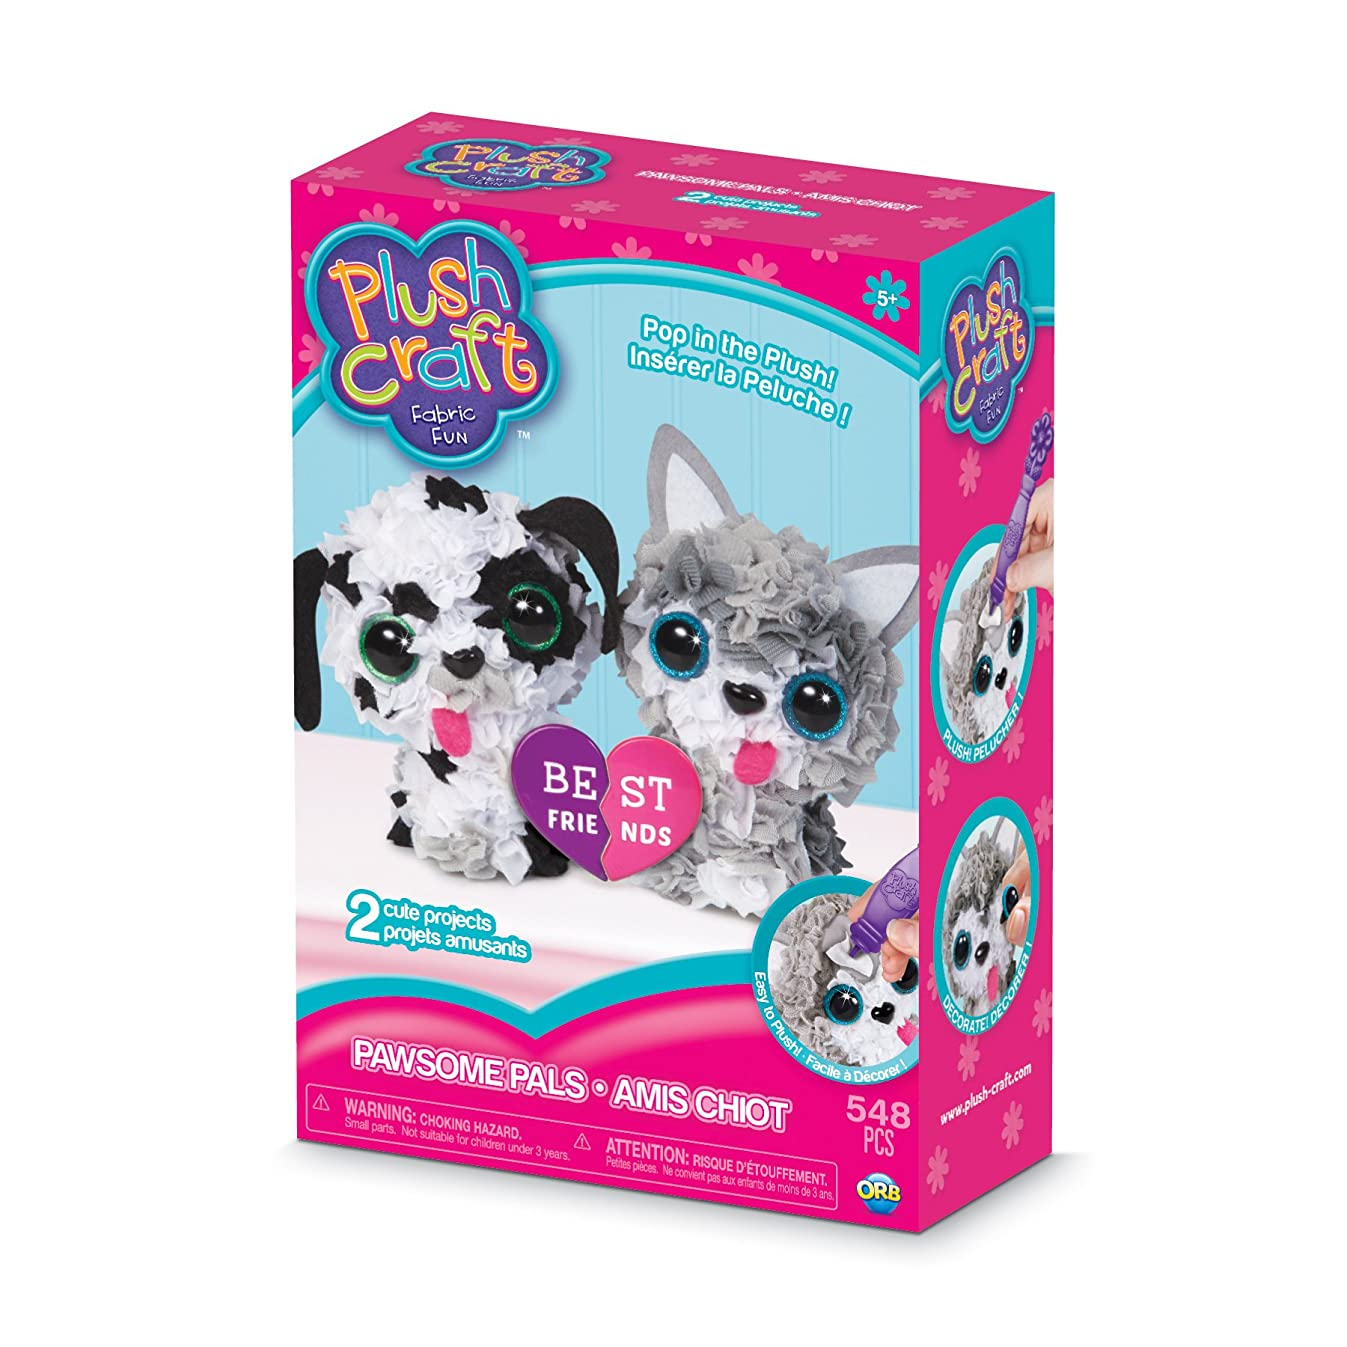 THE ORB FACTORY LIMITED 10027967 Plush Craft 3D Paw Some Pals Set, 10